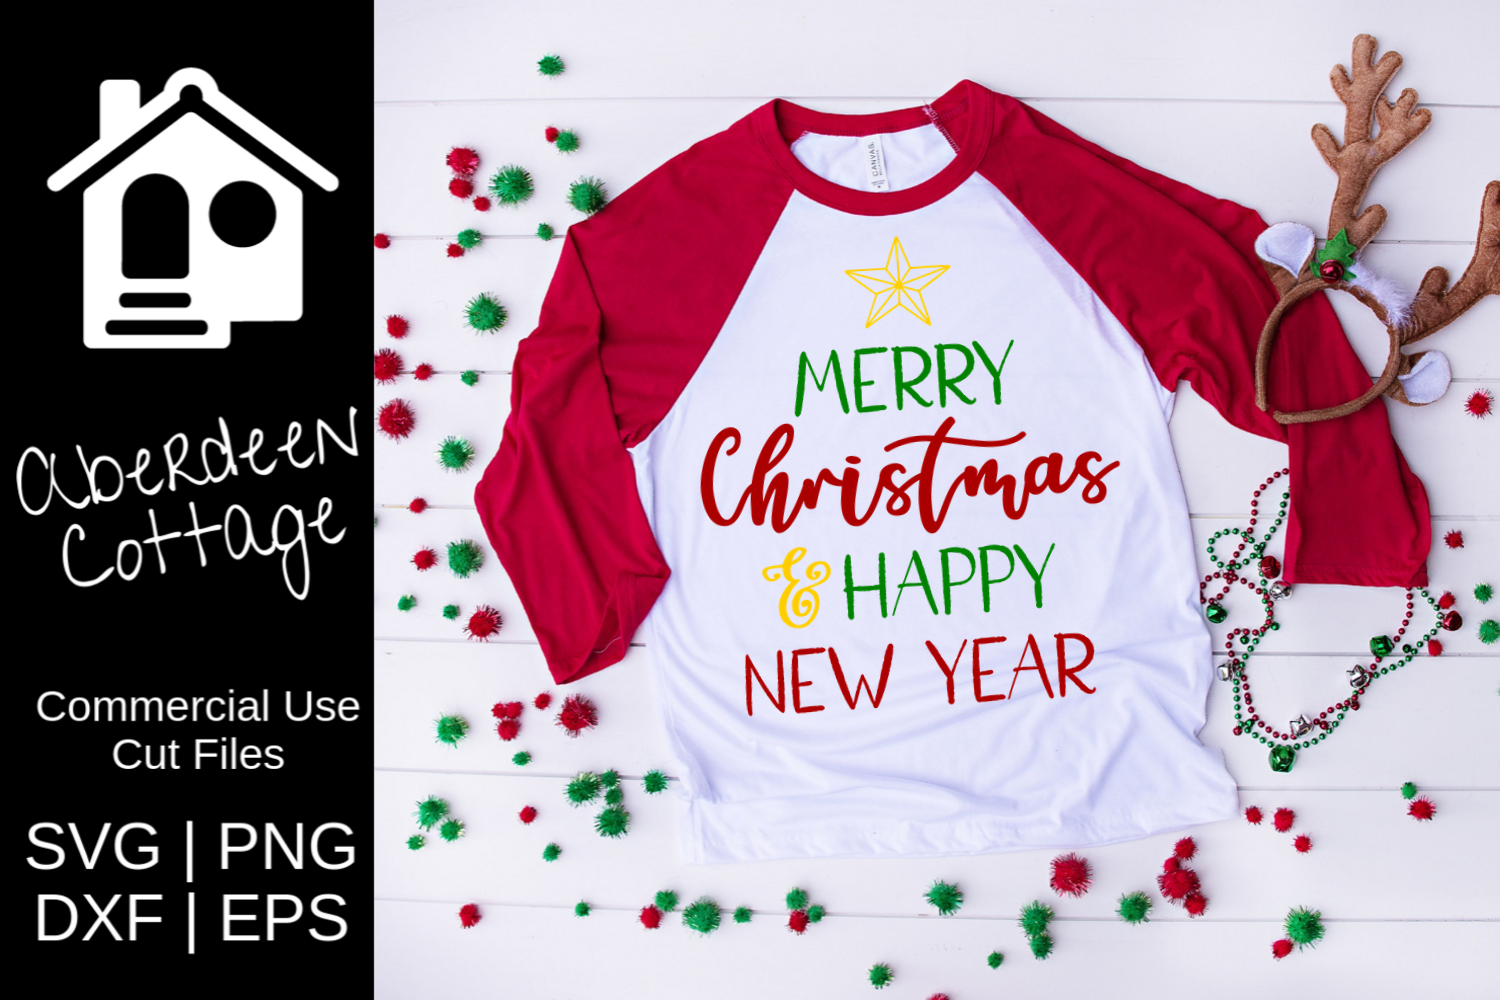 Merry Christmas Happy New Year Design example image 1